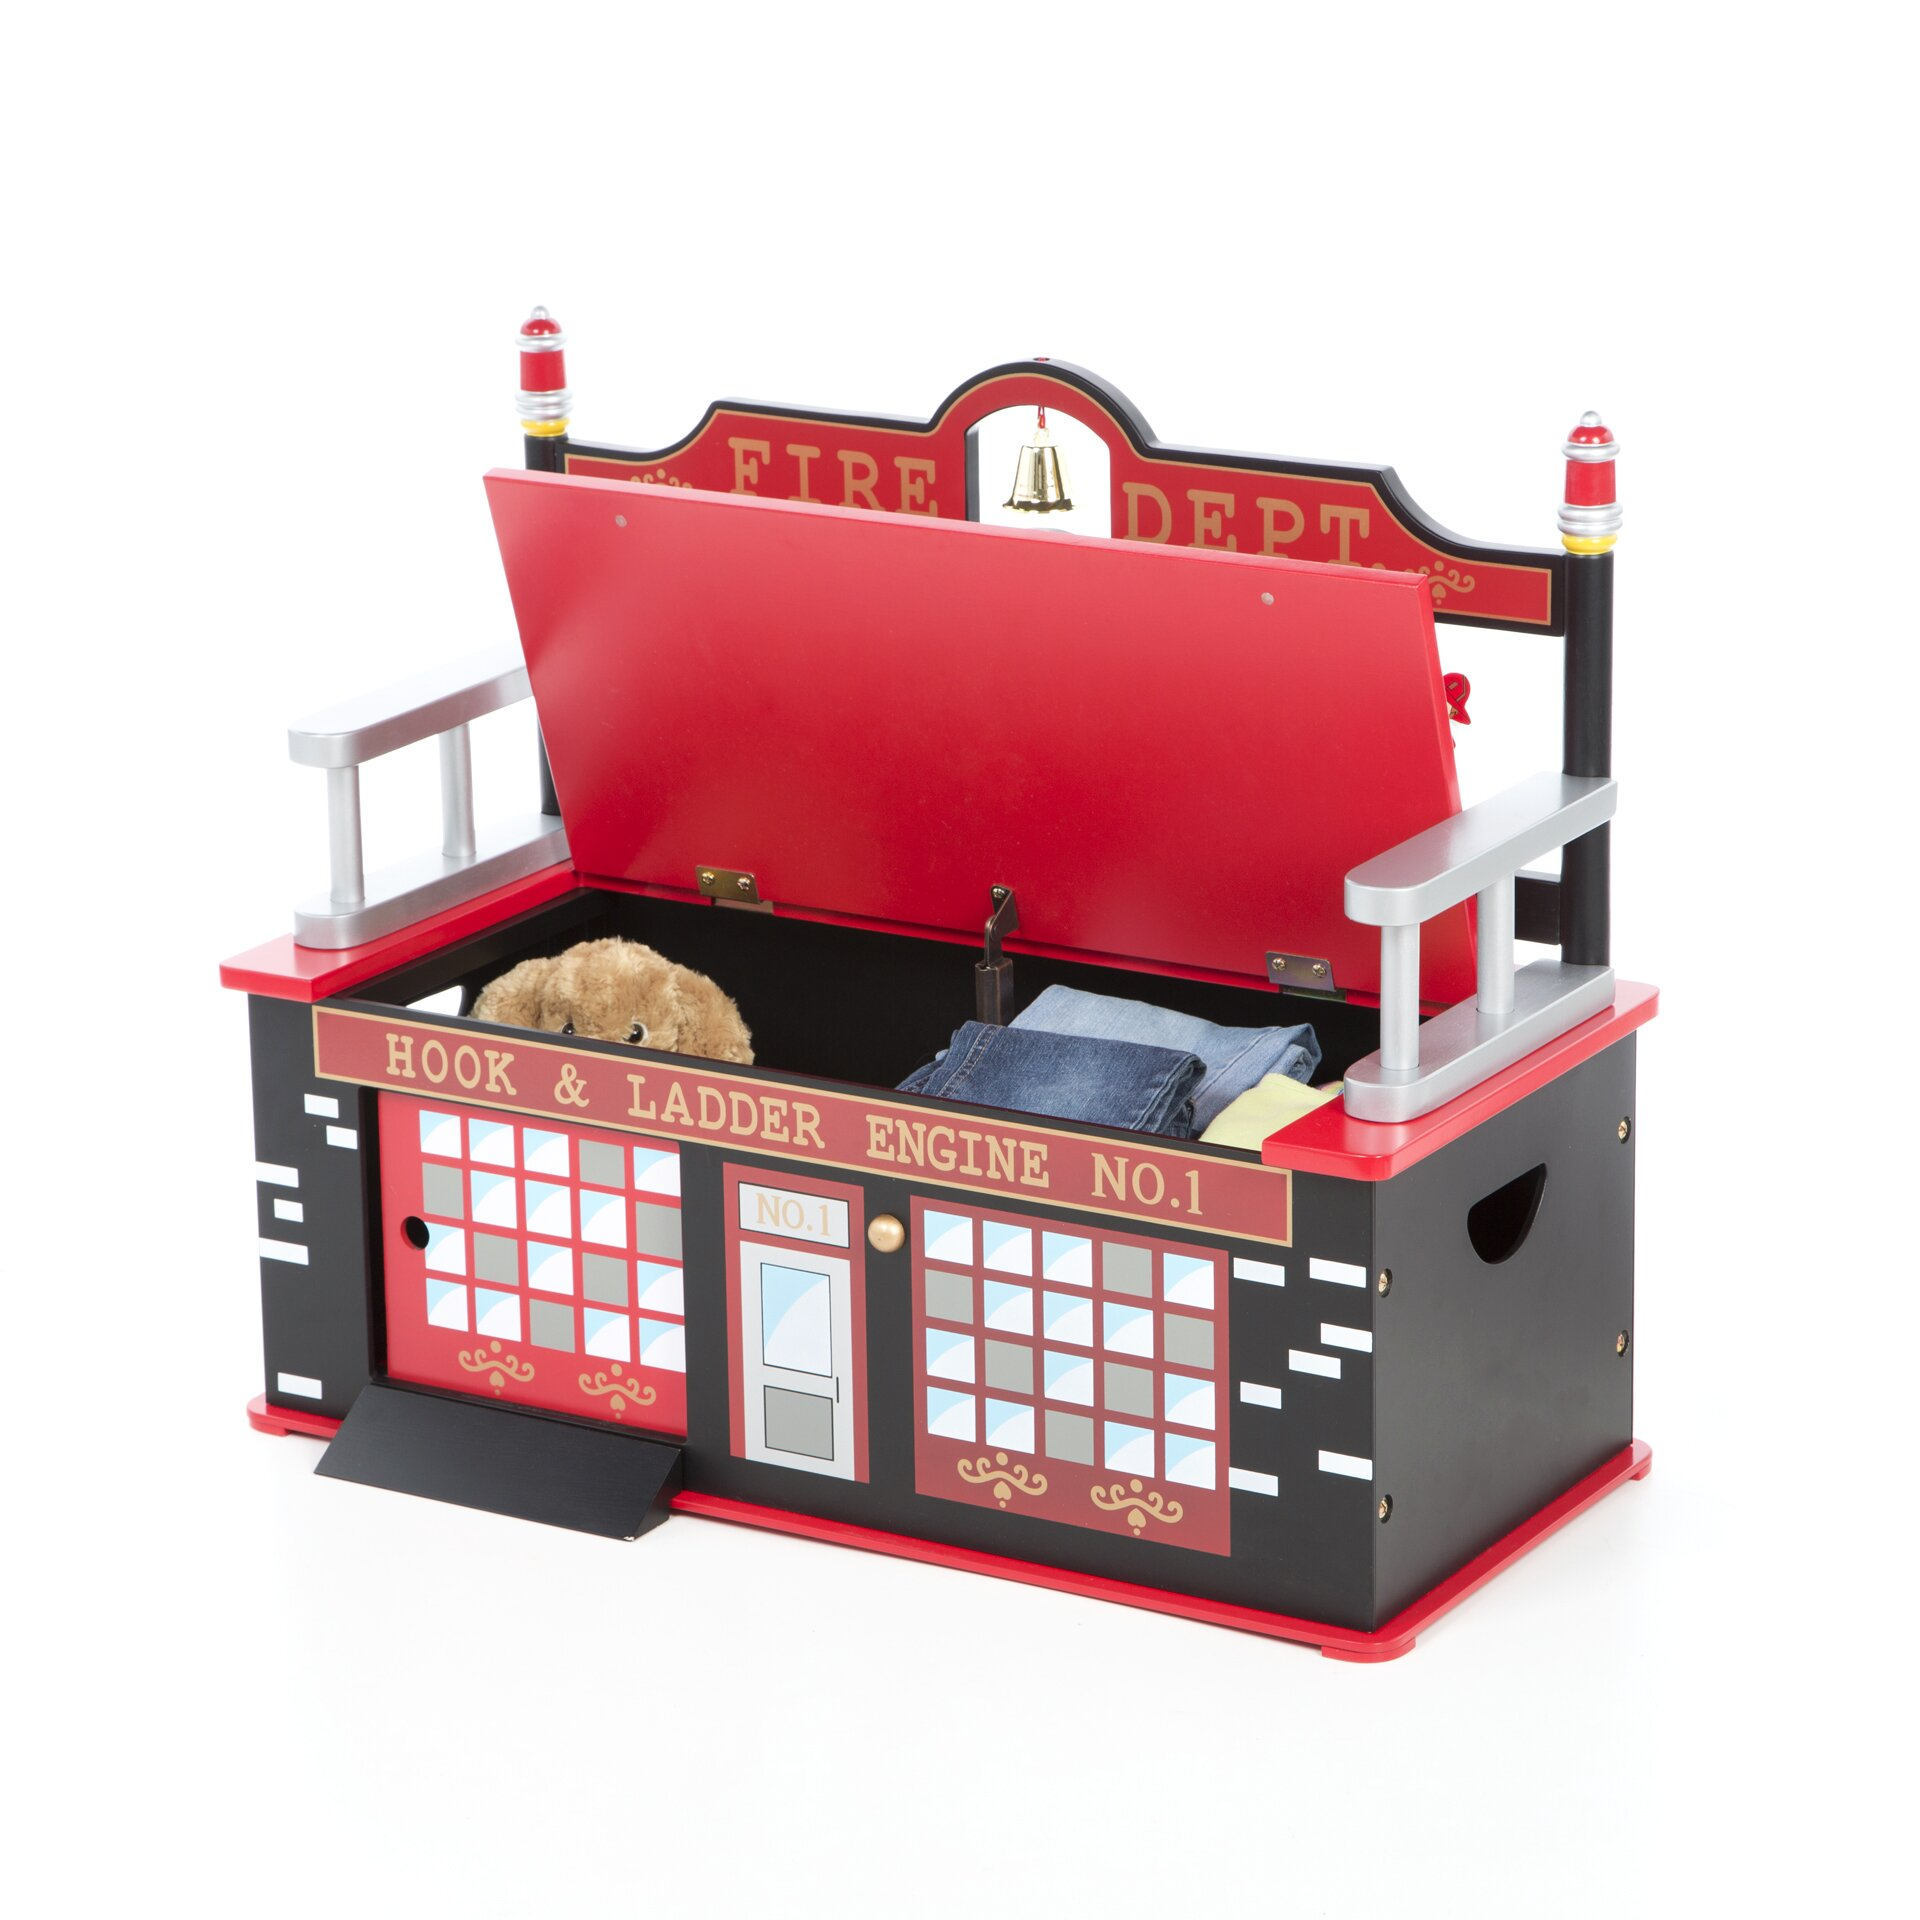 Levels Of Discovery Firefighter Kids Bench With Storage Compartment Reviews Wayfair